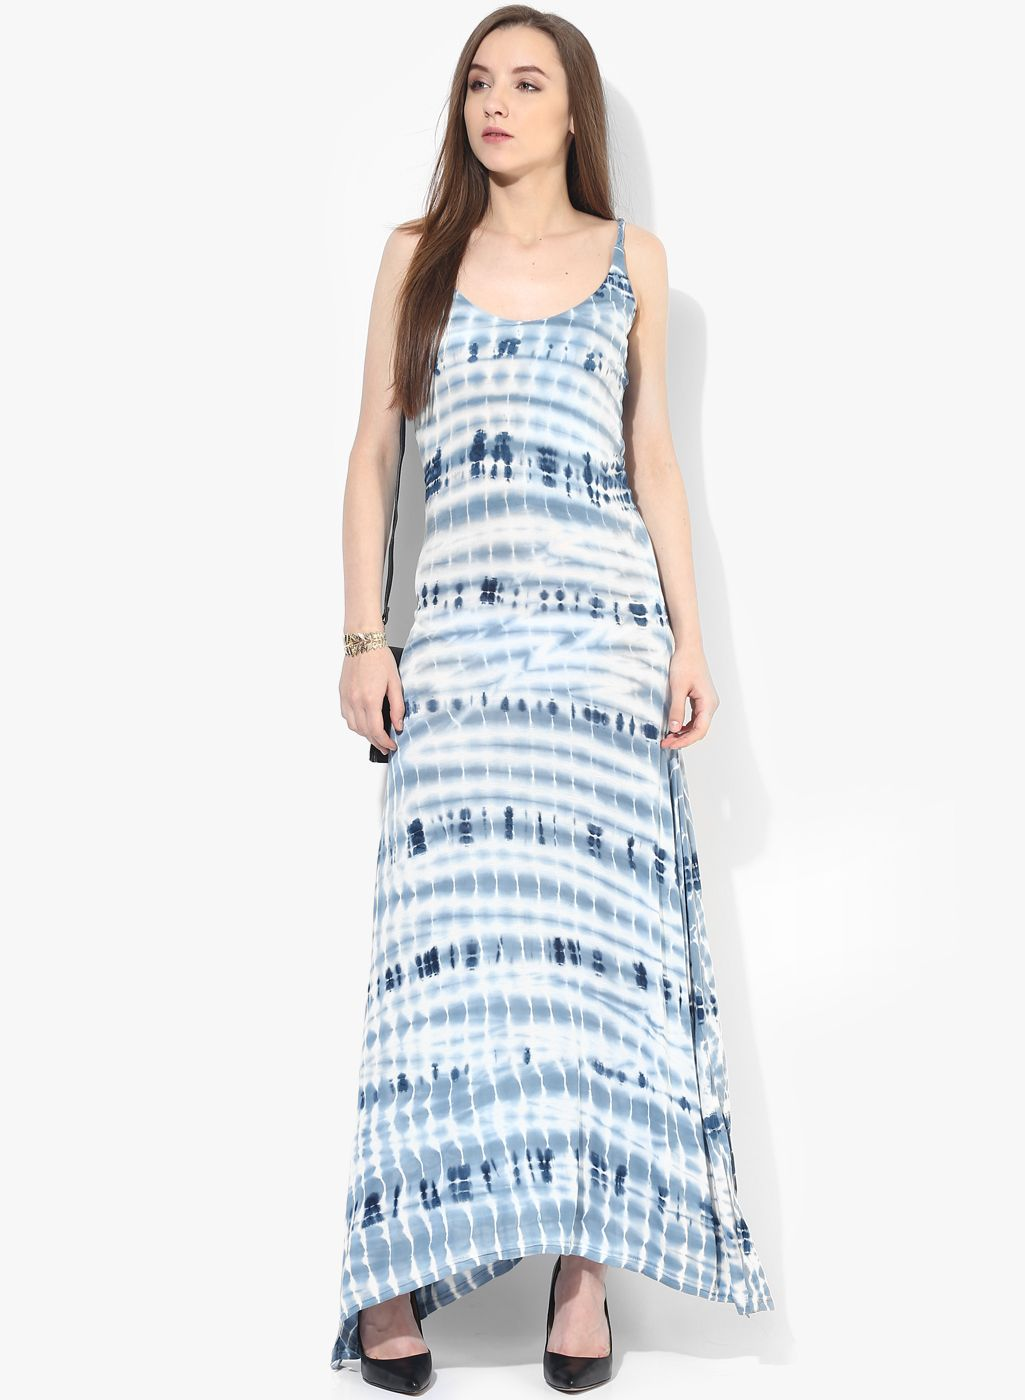 67e084db15 Alia Bhatt For Jabong Light Blue Printed Sleeveless Maxi Dress #Blue #Maxi  #Summer